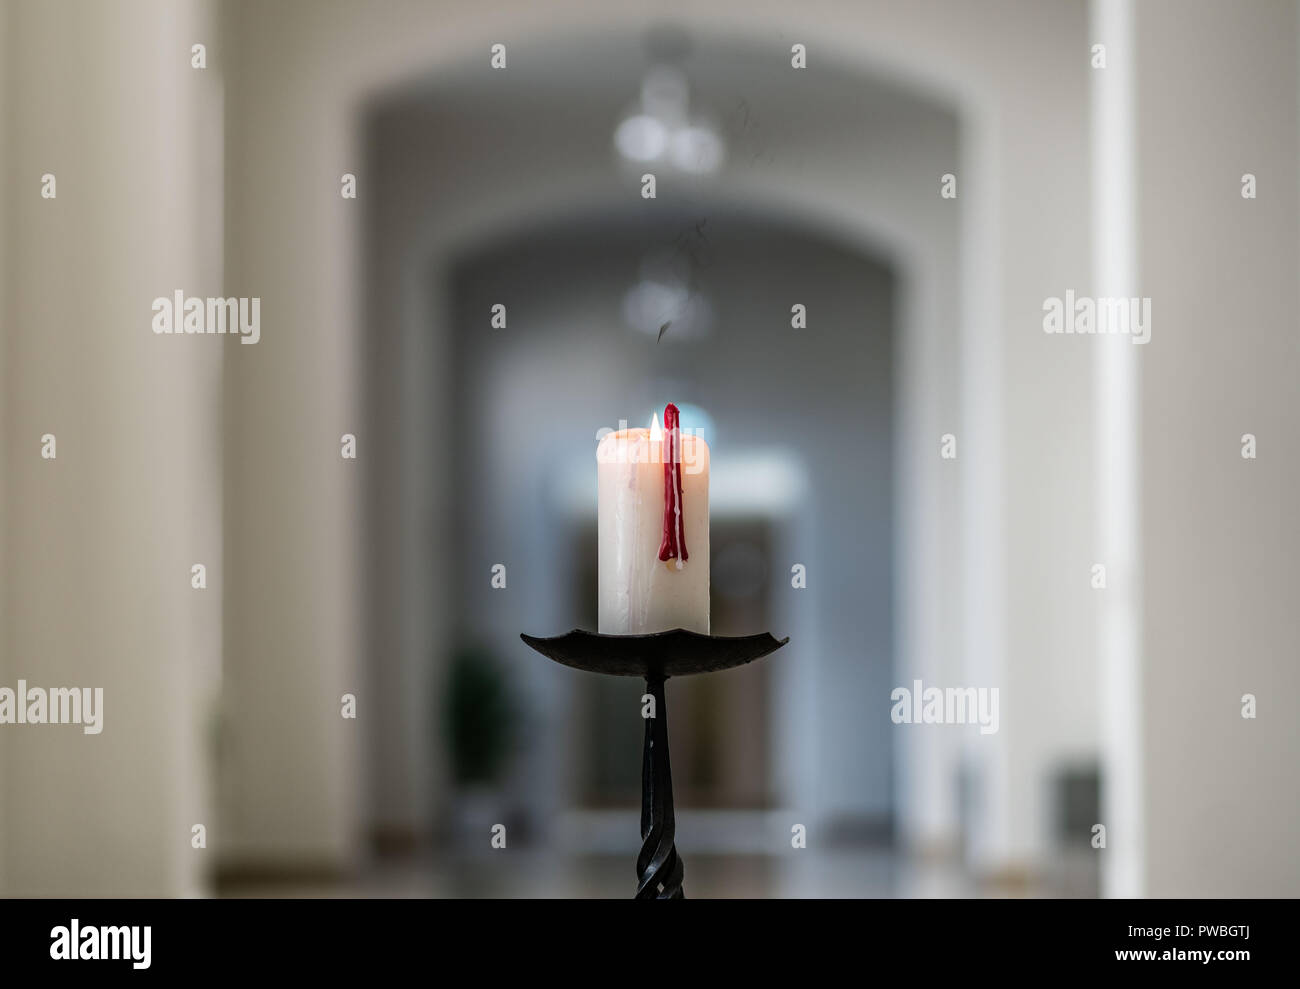 15 October 2018, Hessen, Frankfurt_Main: A candle burns at the entrance of the chapel for the opening service of the semester at the university Sankt Georgen. Following interviews on homosexuality and women, the Vatican checks whether the professor of theology Wucherpfennig receives the declaration of no objection for his work as rector. Photo: Frank Rumpenhorst/dpa - Stock Image